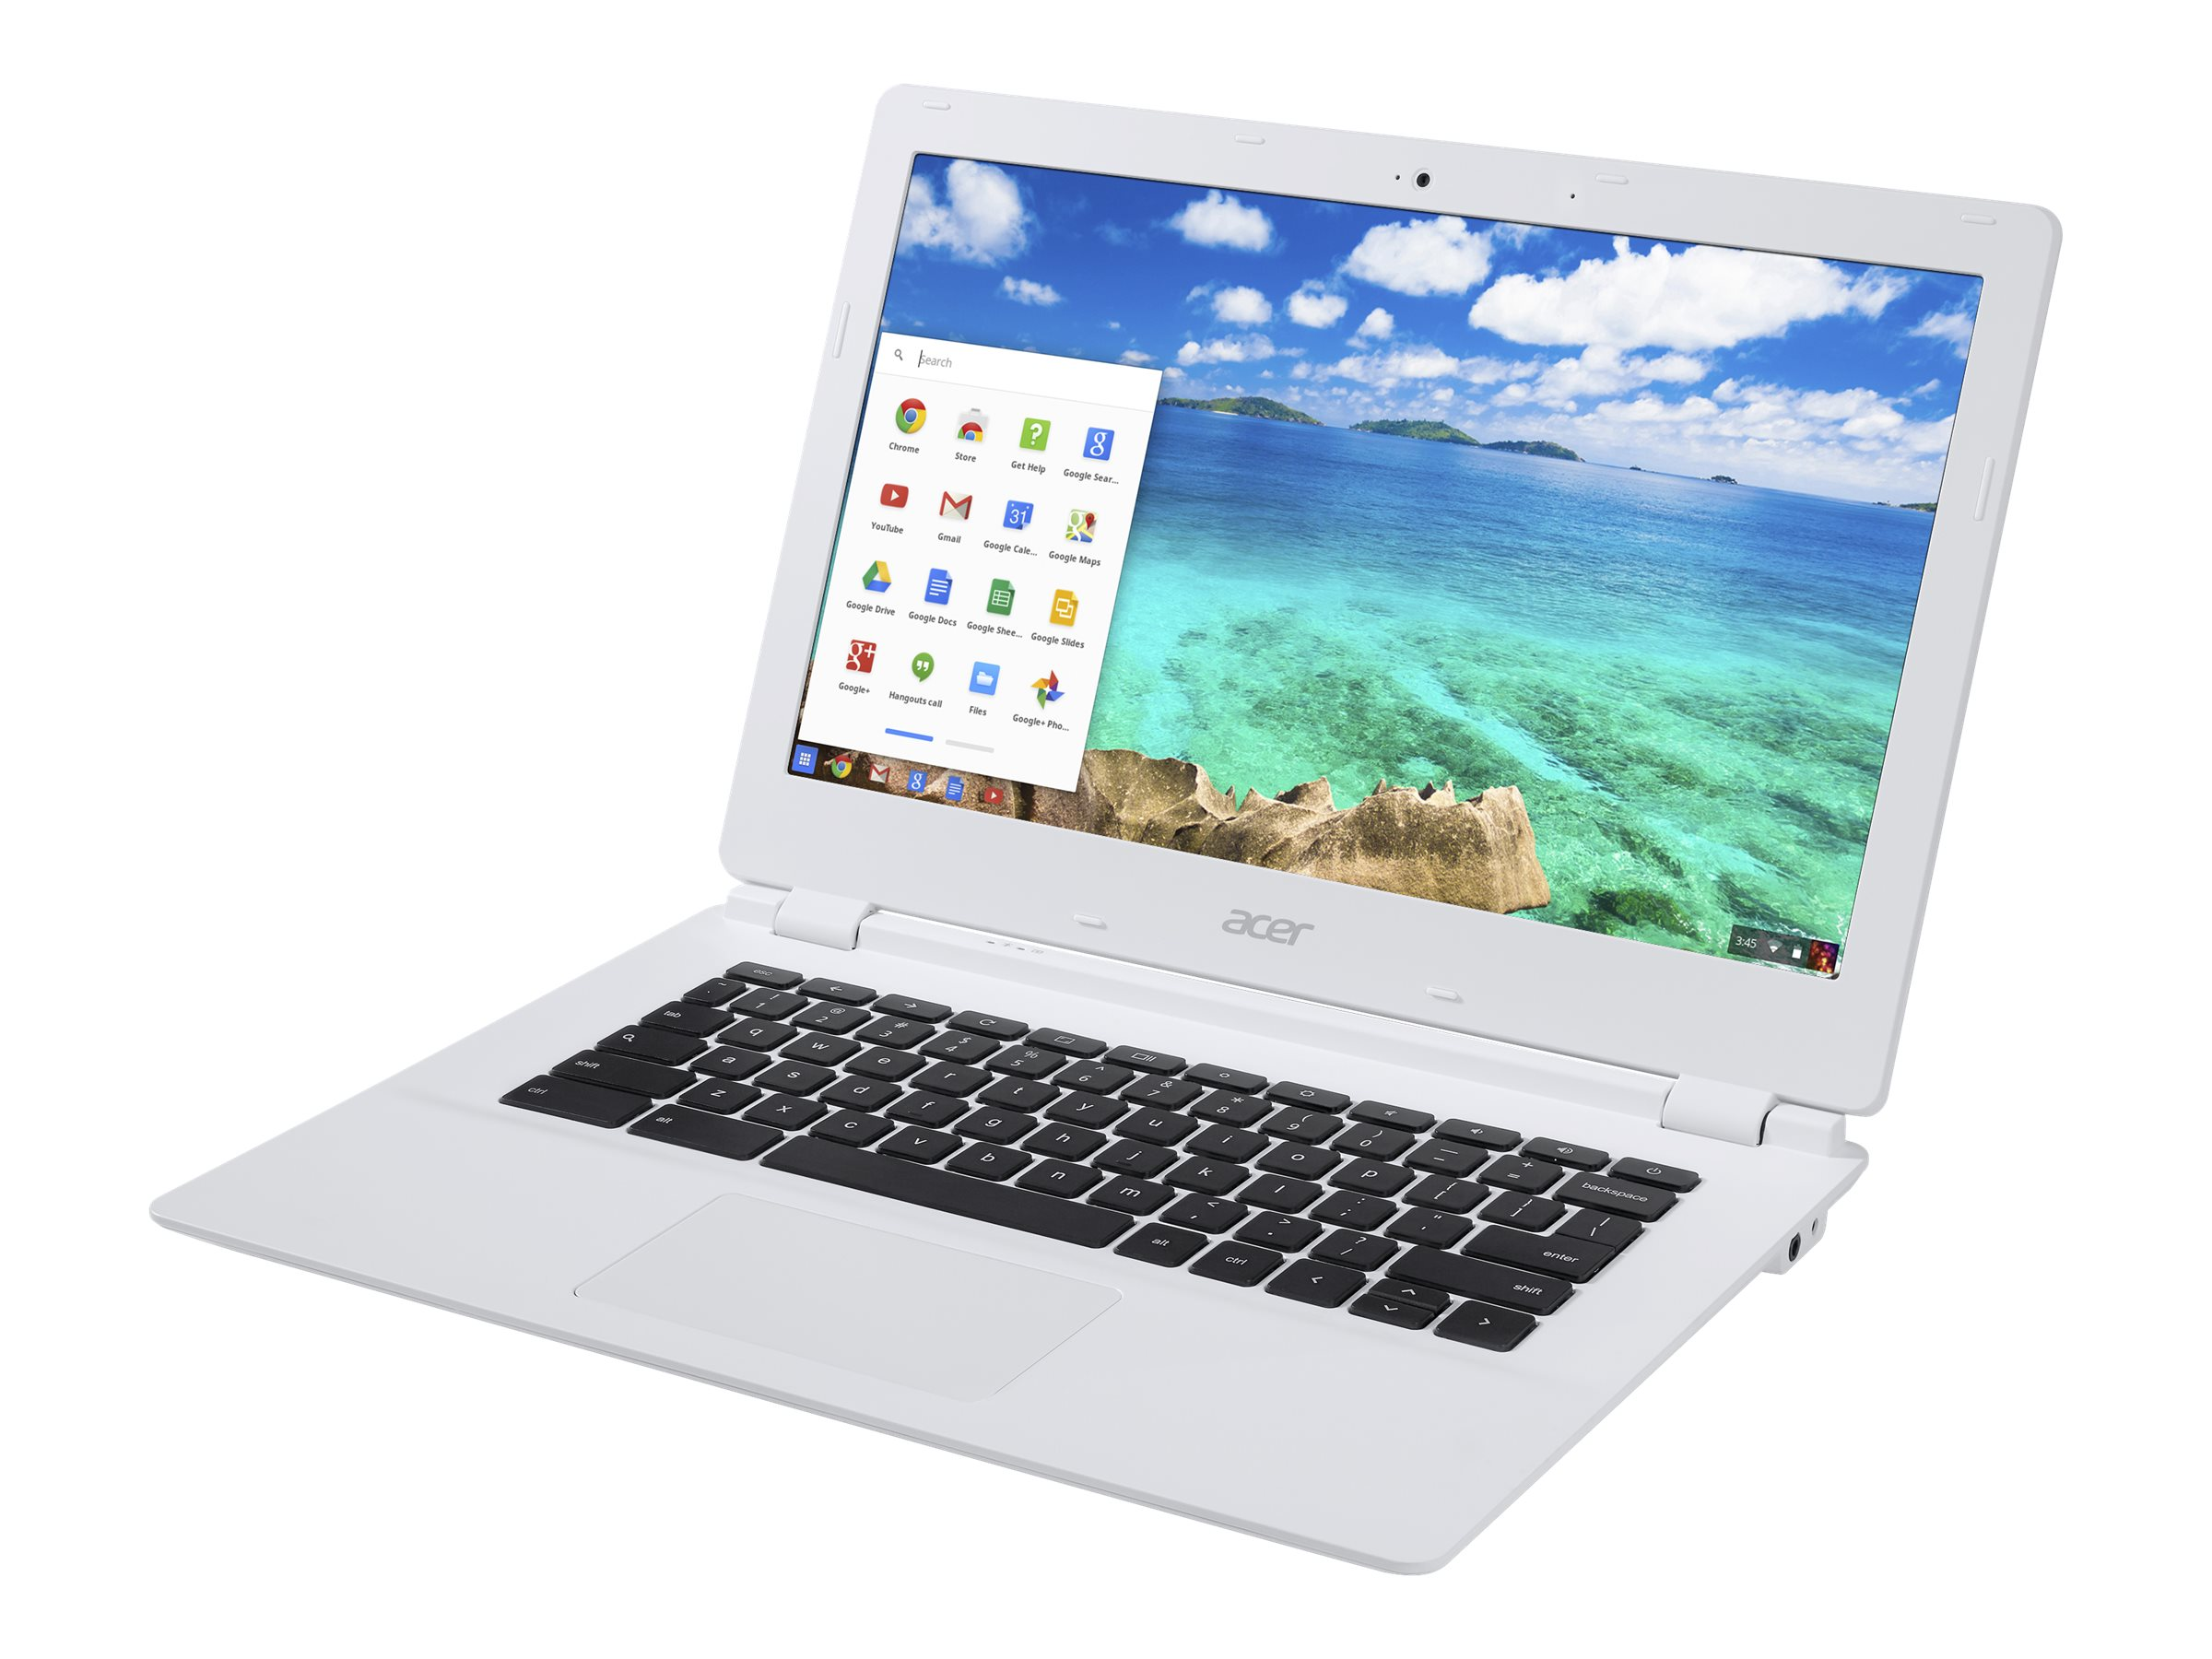 Scratch & Dent Acer Chromebook CB5-311-T9Y2 Cortex A15 2.1GHz 4GB 16GB SSD abgn ac BT WC 13.3 HD Chrome, NX.MPRAA.004, 30872803, Notebooks